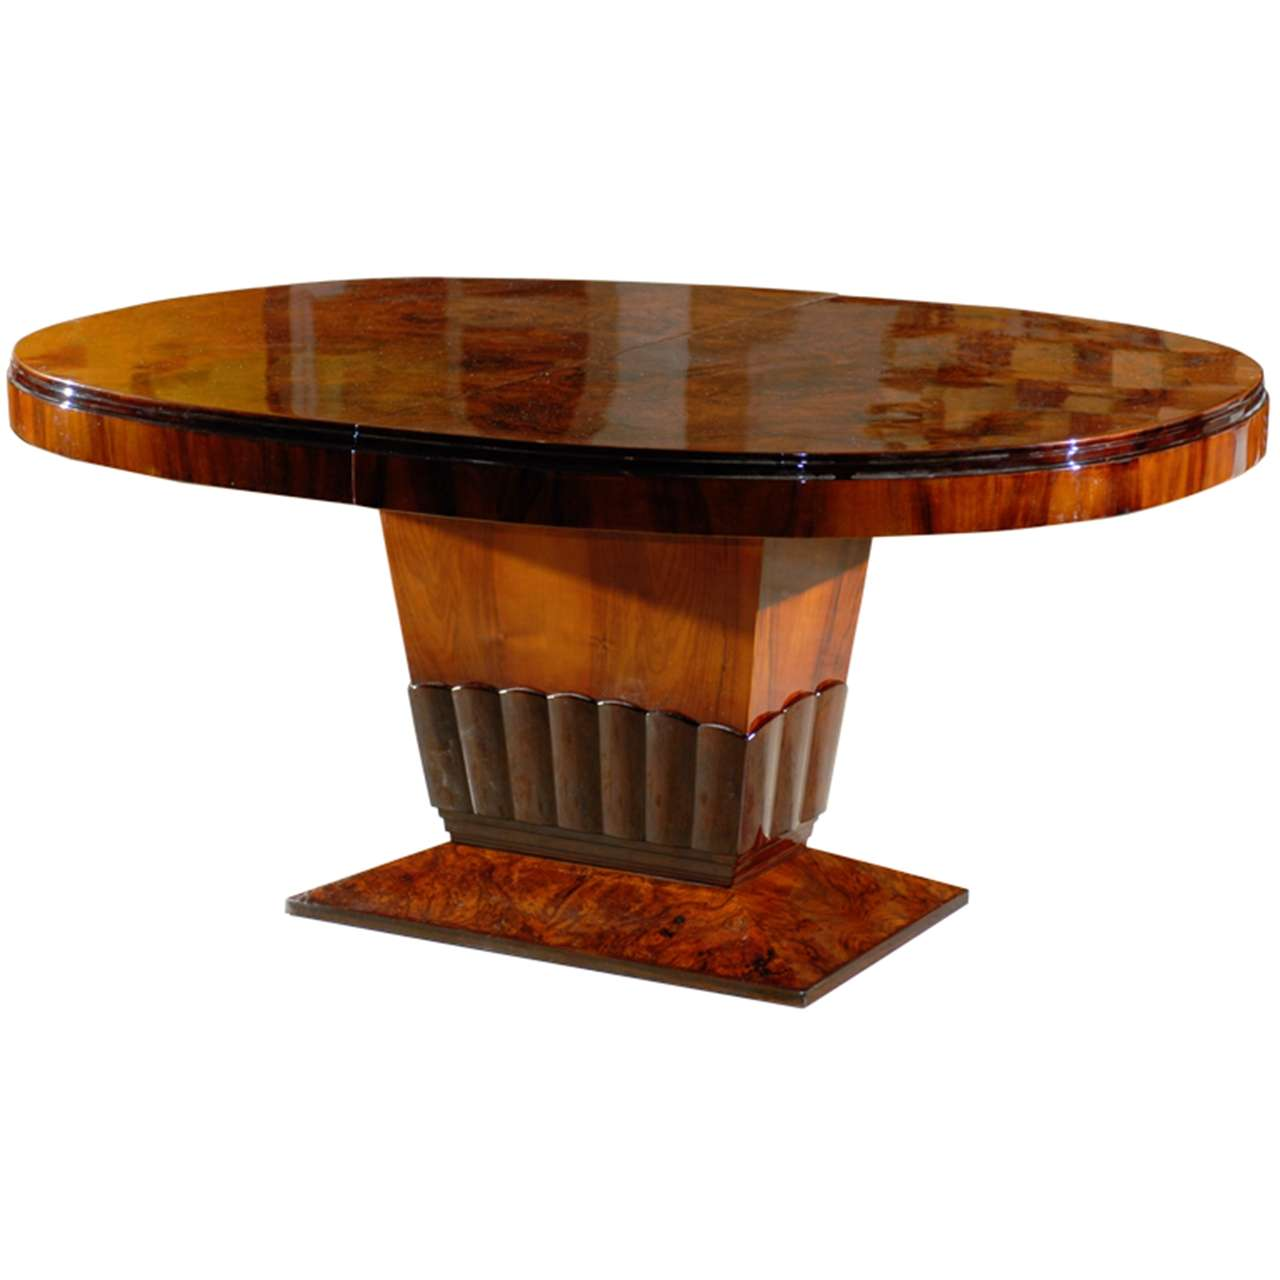 Oval dining table pedestal base - Art Deco Oval Dining Table With Tulip Base 1